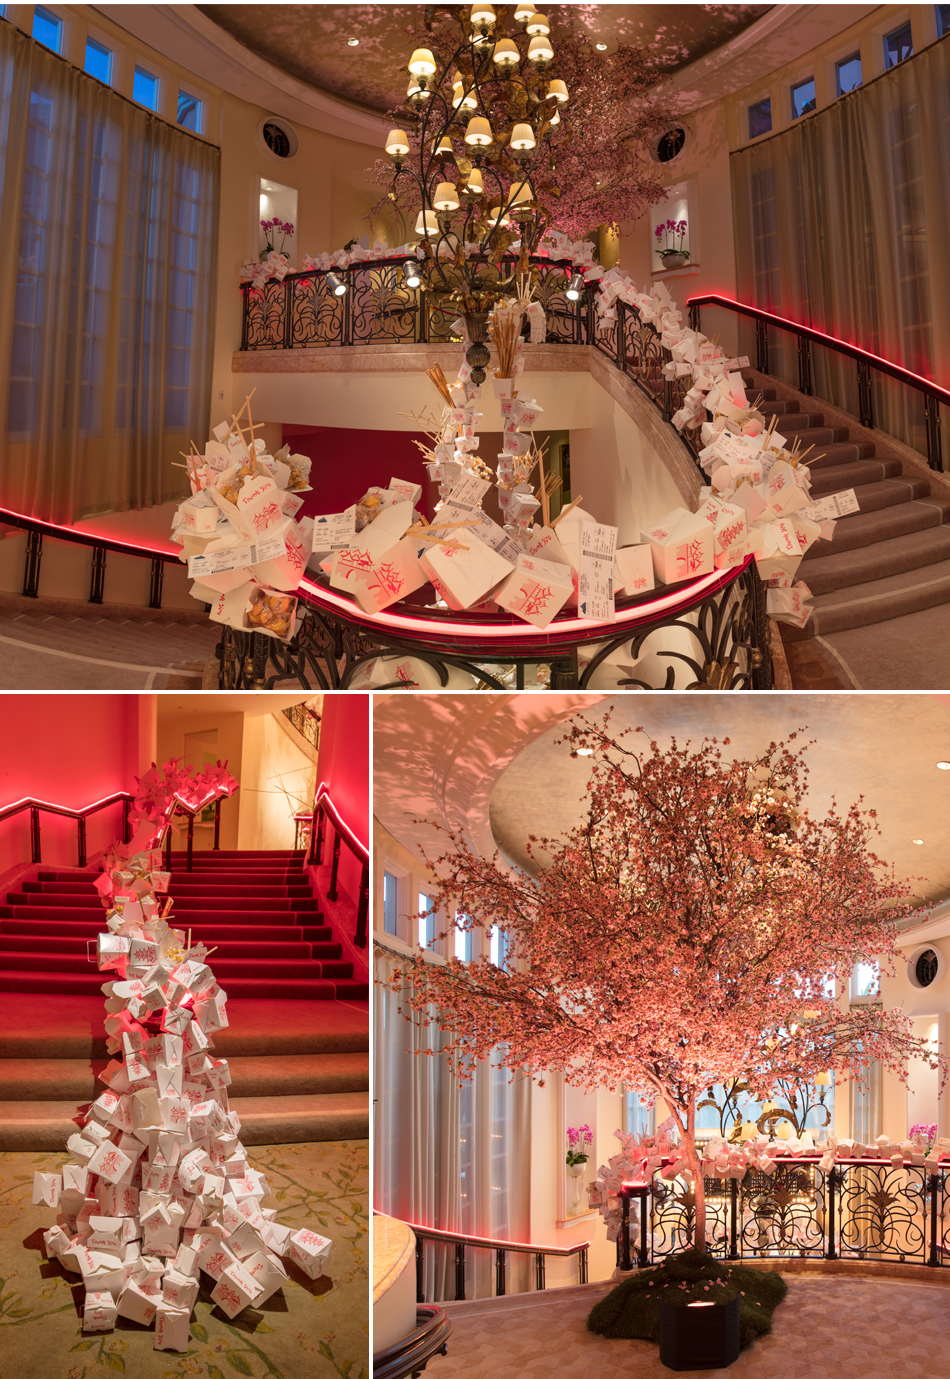 internationaleventcompany.com | International Event Company Los Angeles Wedding Planner and Designer | Corporate Holiday Party and Meetings at The Beverly Hills Hotel | Luxury Event Planners in Southern California _.jpg